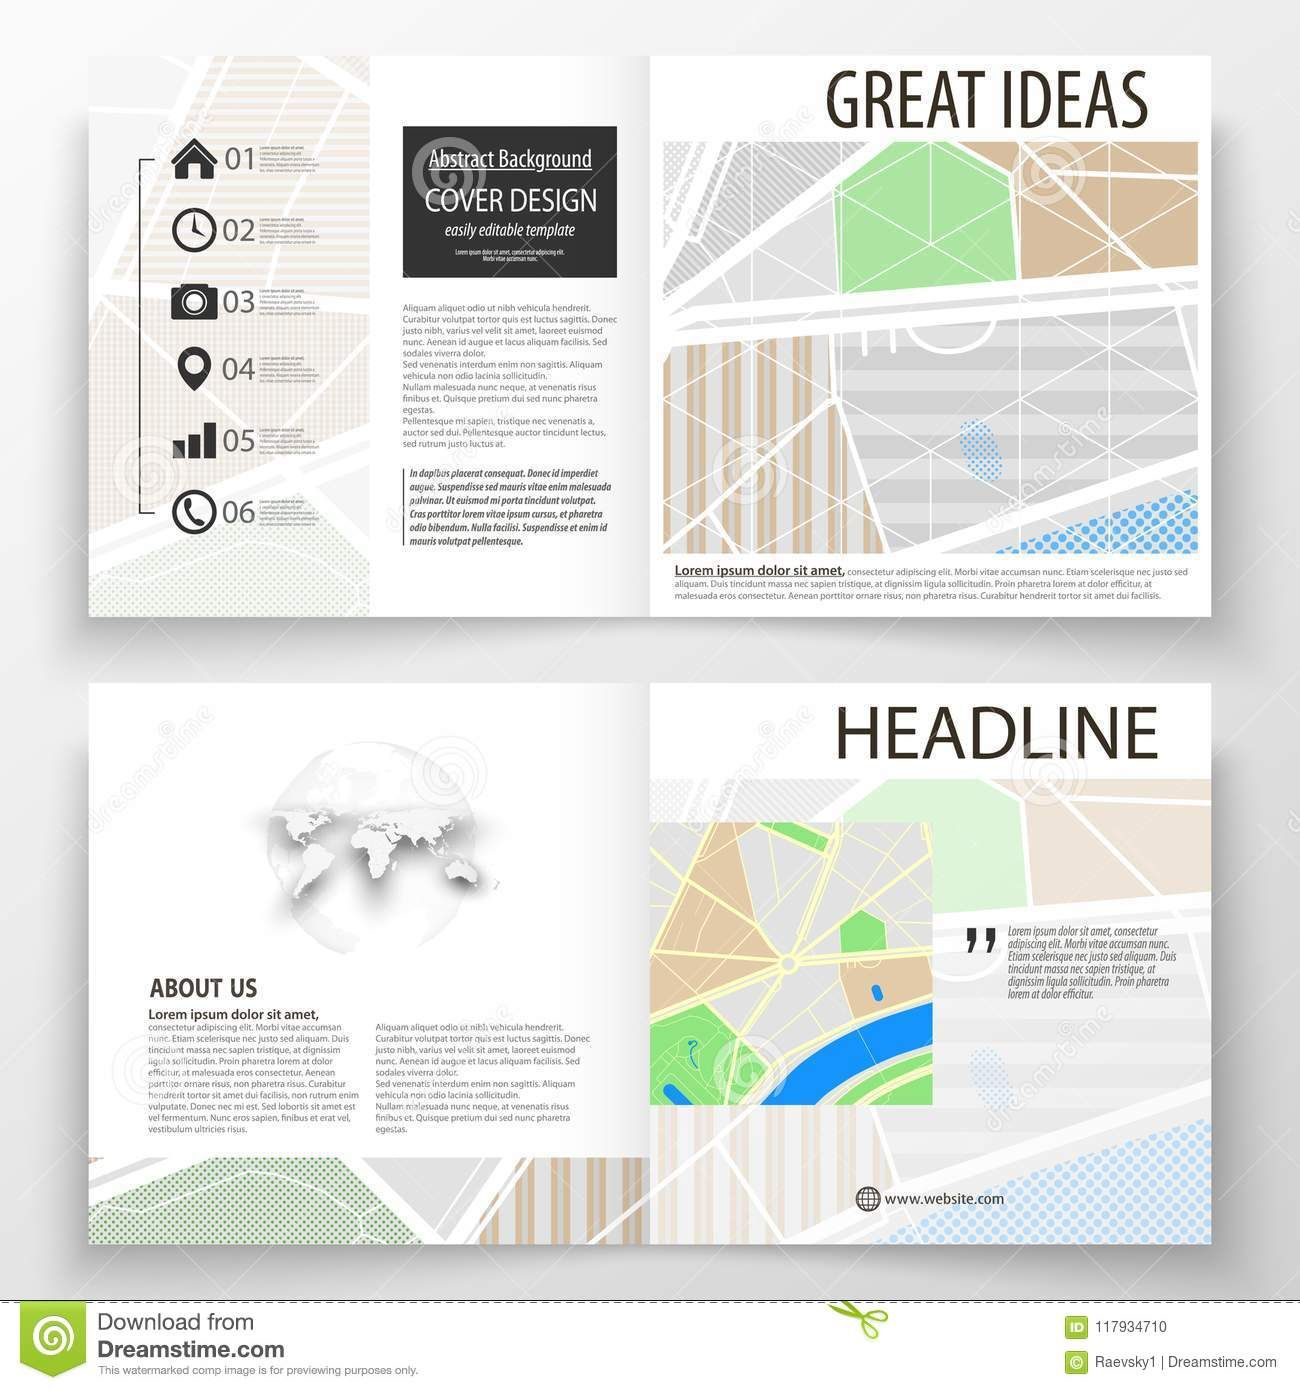 Business Templates For Square Bi Fold Brochure Magazine For Blank City Map Template Great Cretive Templates Business Template Bi Fold Brochure Brochure